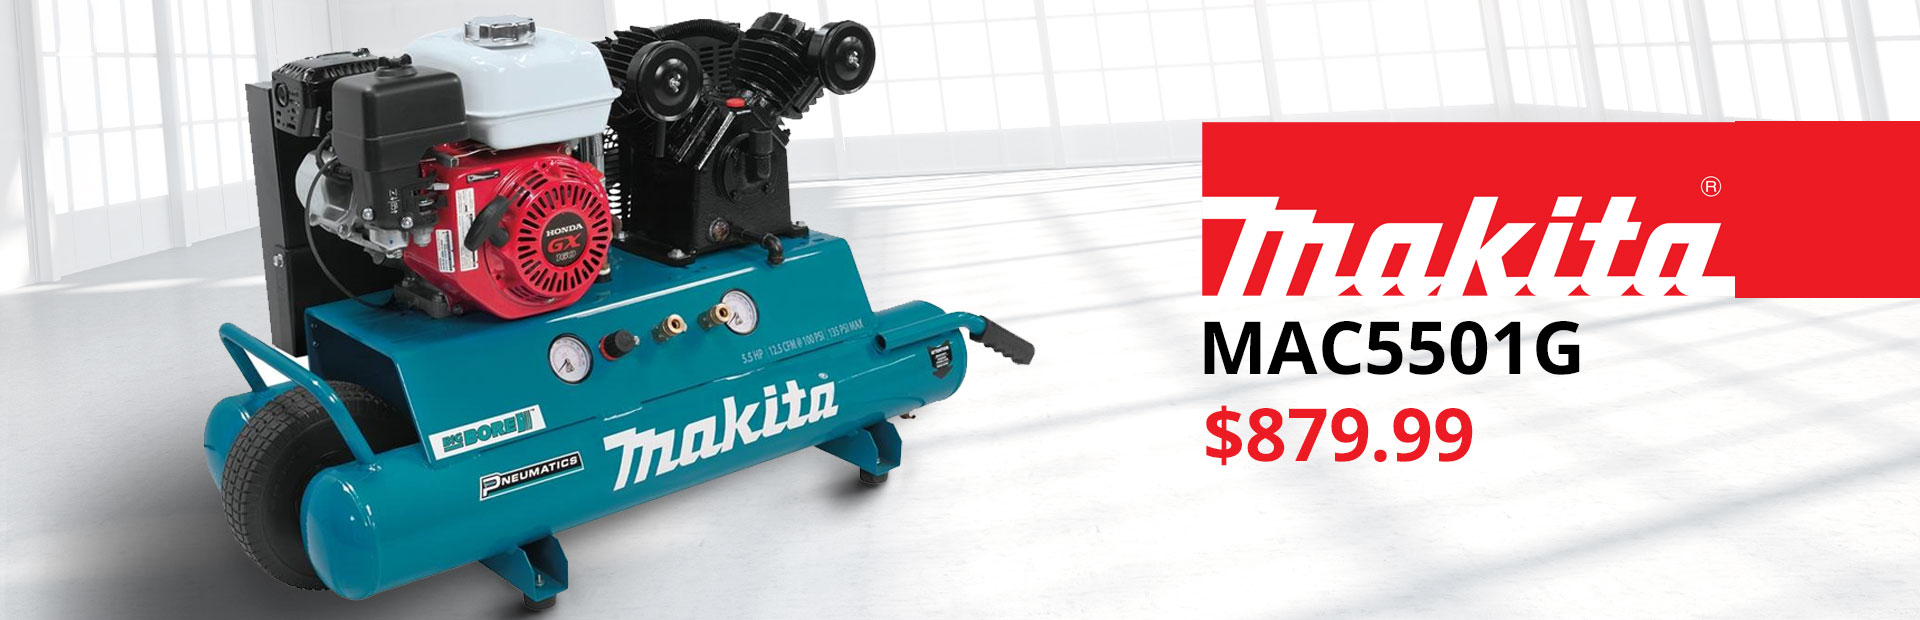 Get the Makita MAC5501G for just $879.99!